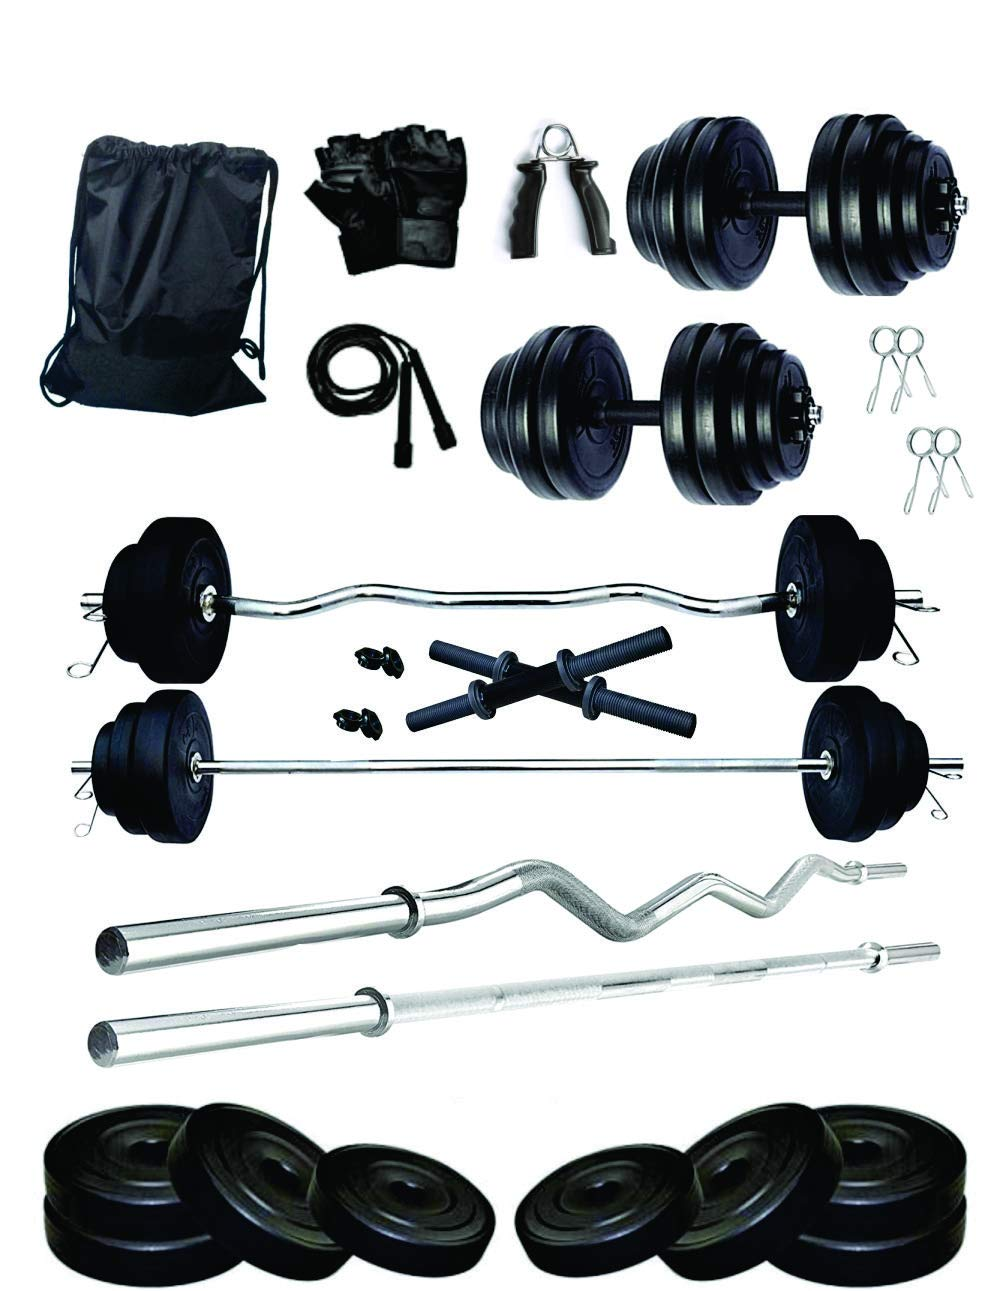 FitBox Sports Intruder Home Gym Set